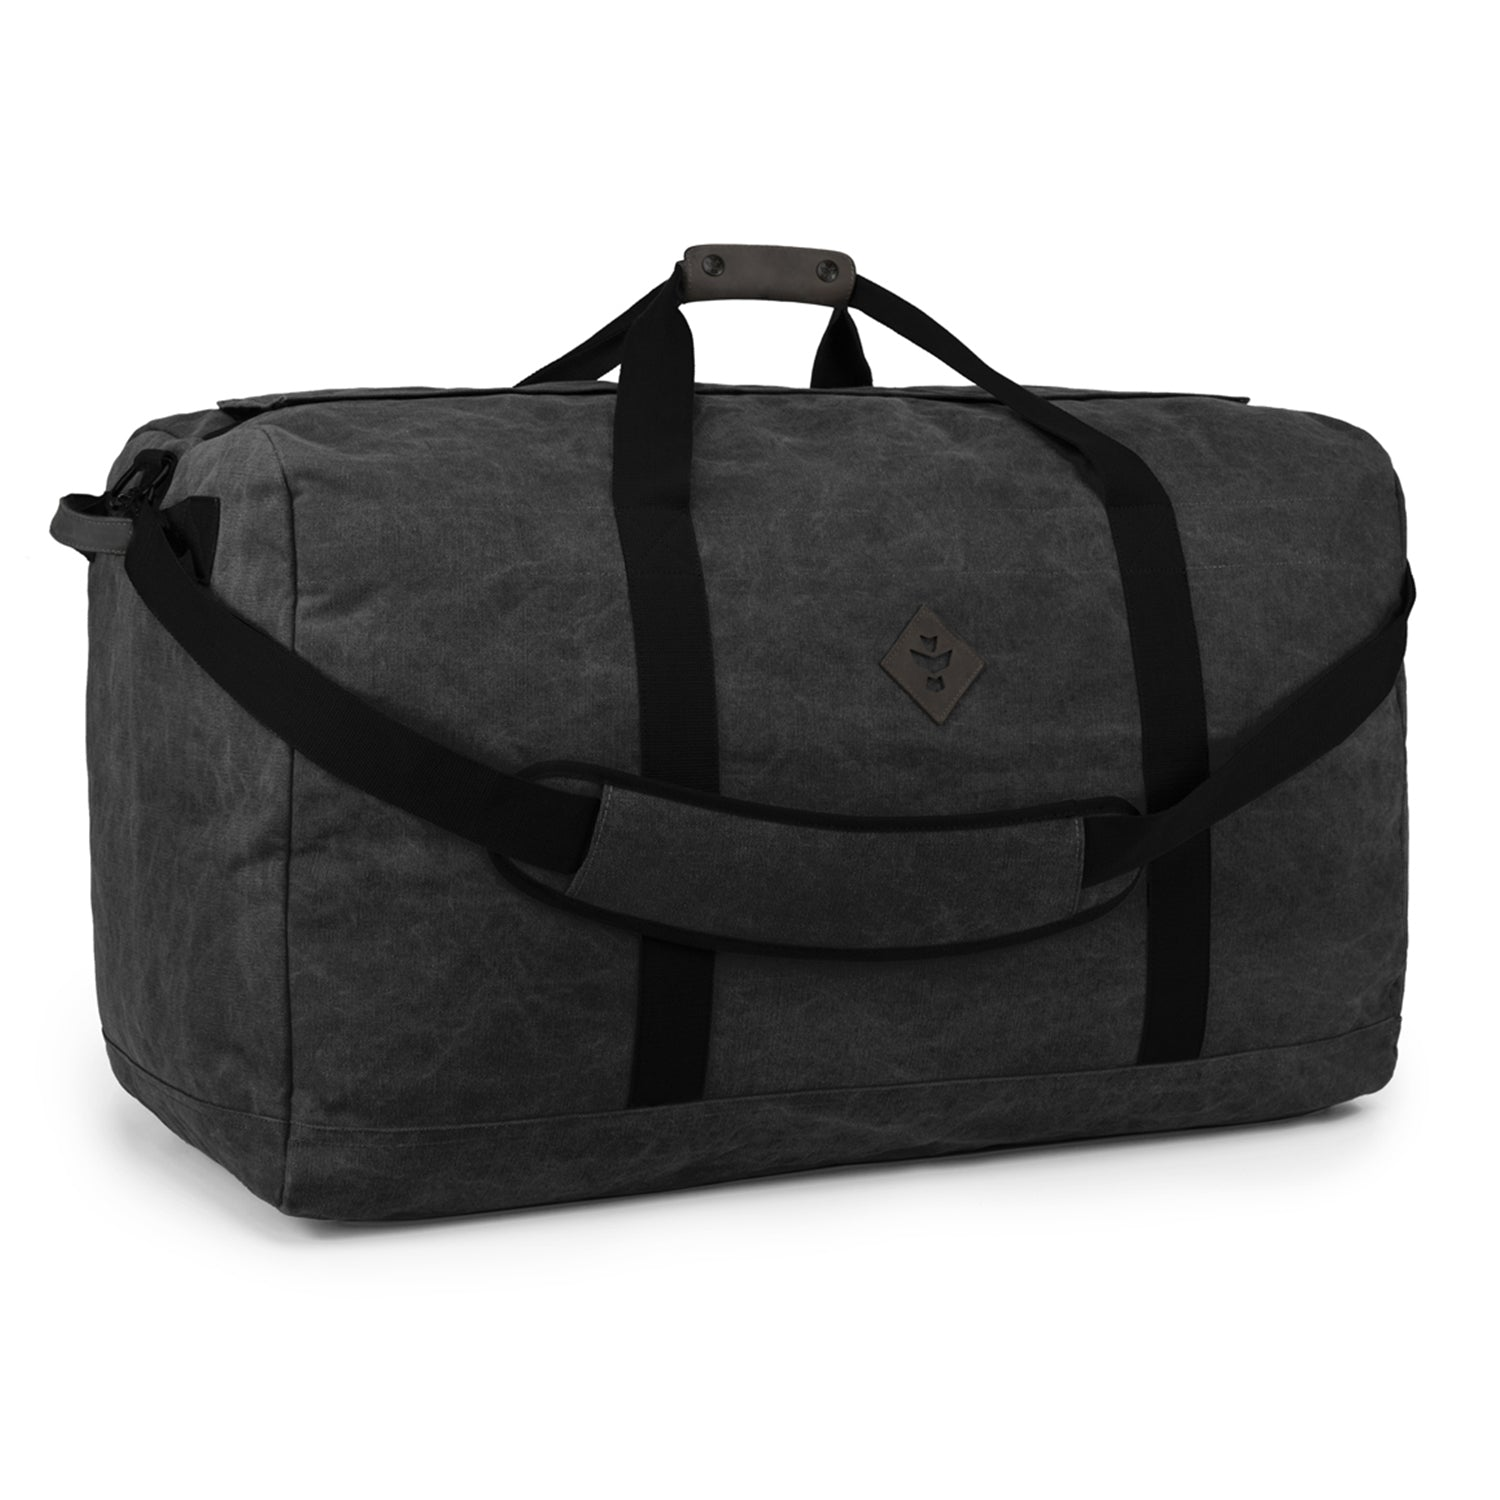 Smoke Canvas Smell Proof Water Resistant Extra Large Duffle Bag